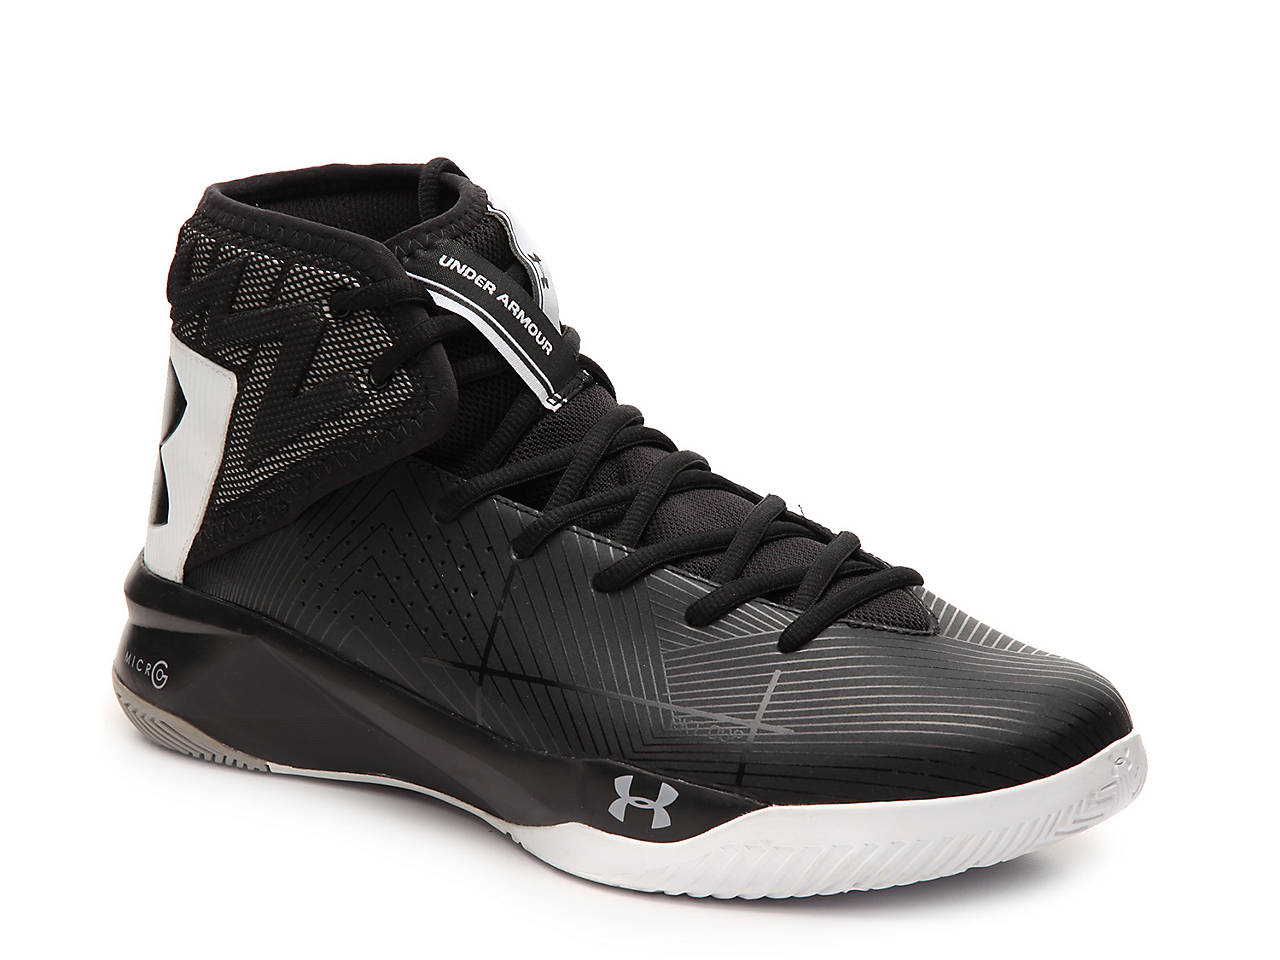 sports shoes e19cb 2873f Rocket 2 Basketball Shoe - Men's